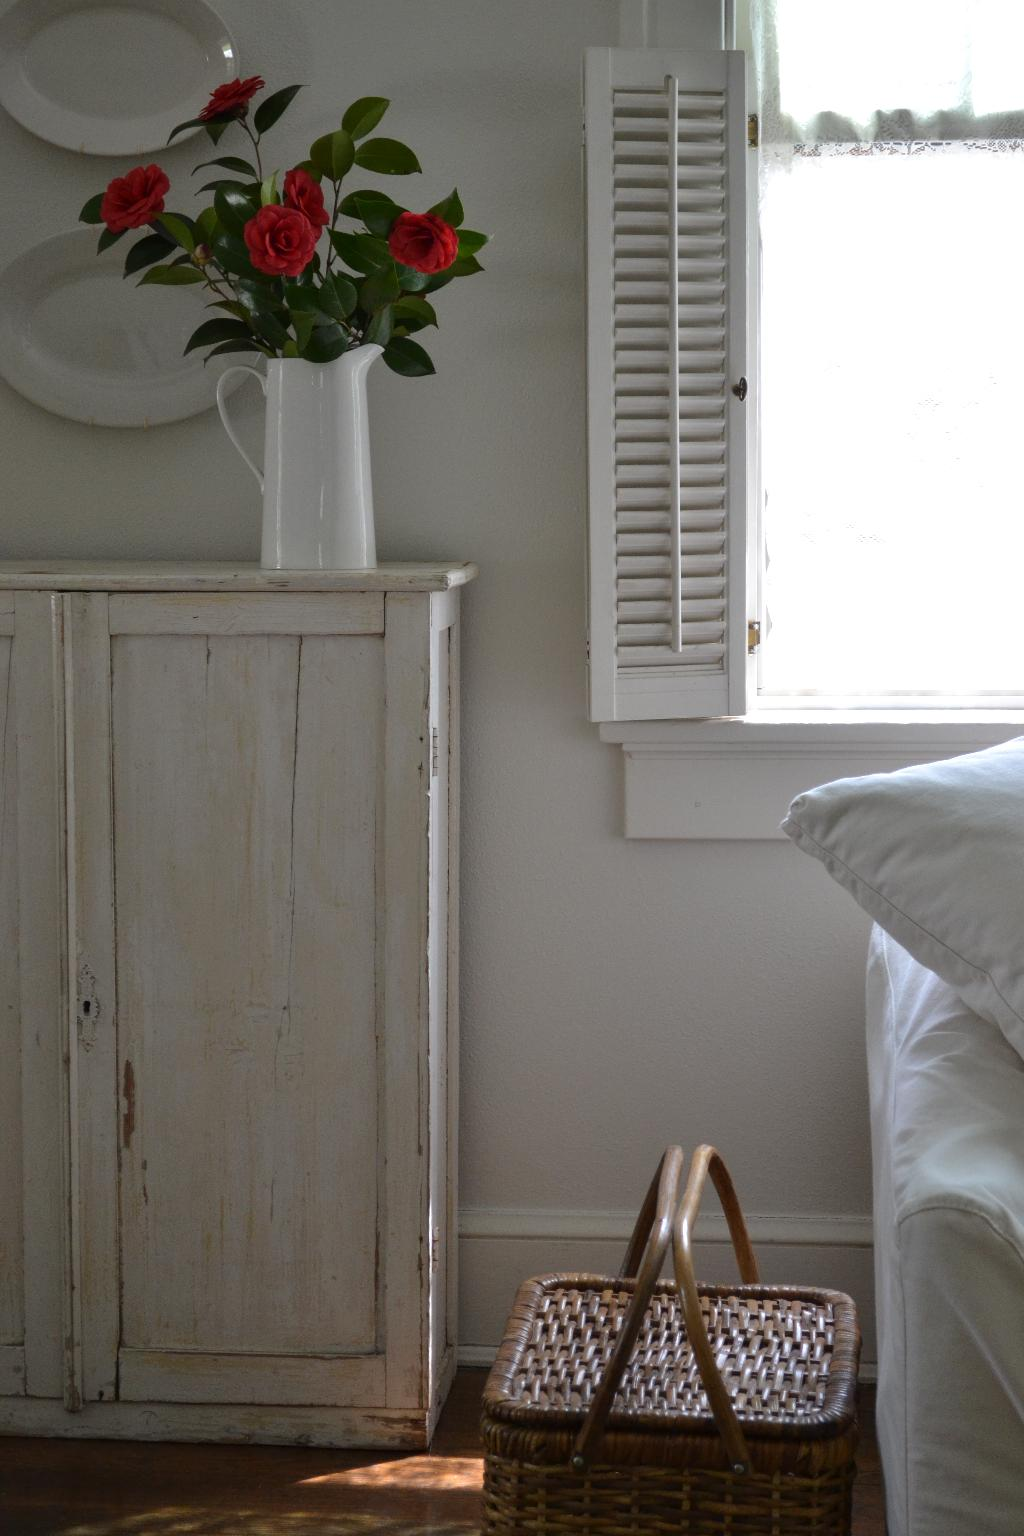 Cottage Fix blog - warm whites, red camellias, and a picnic basket